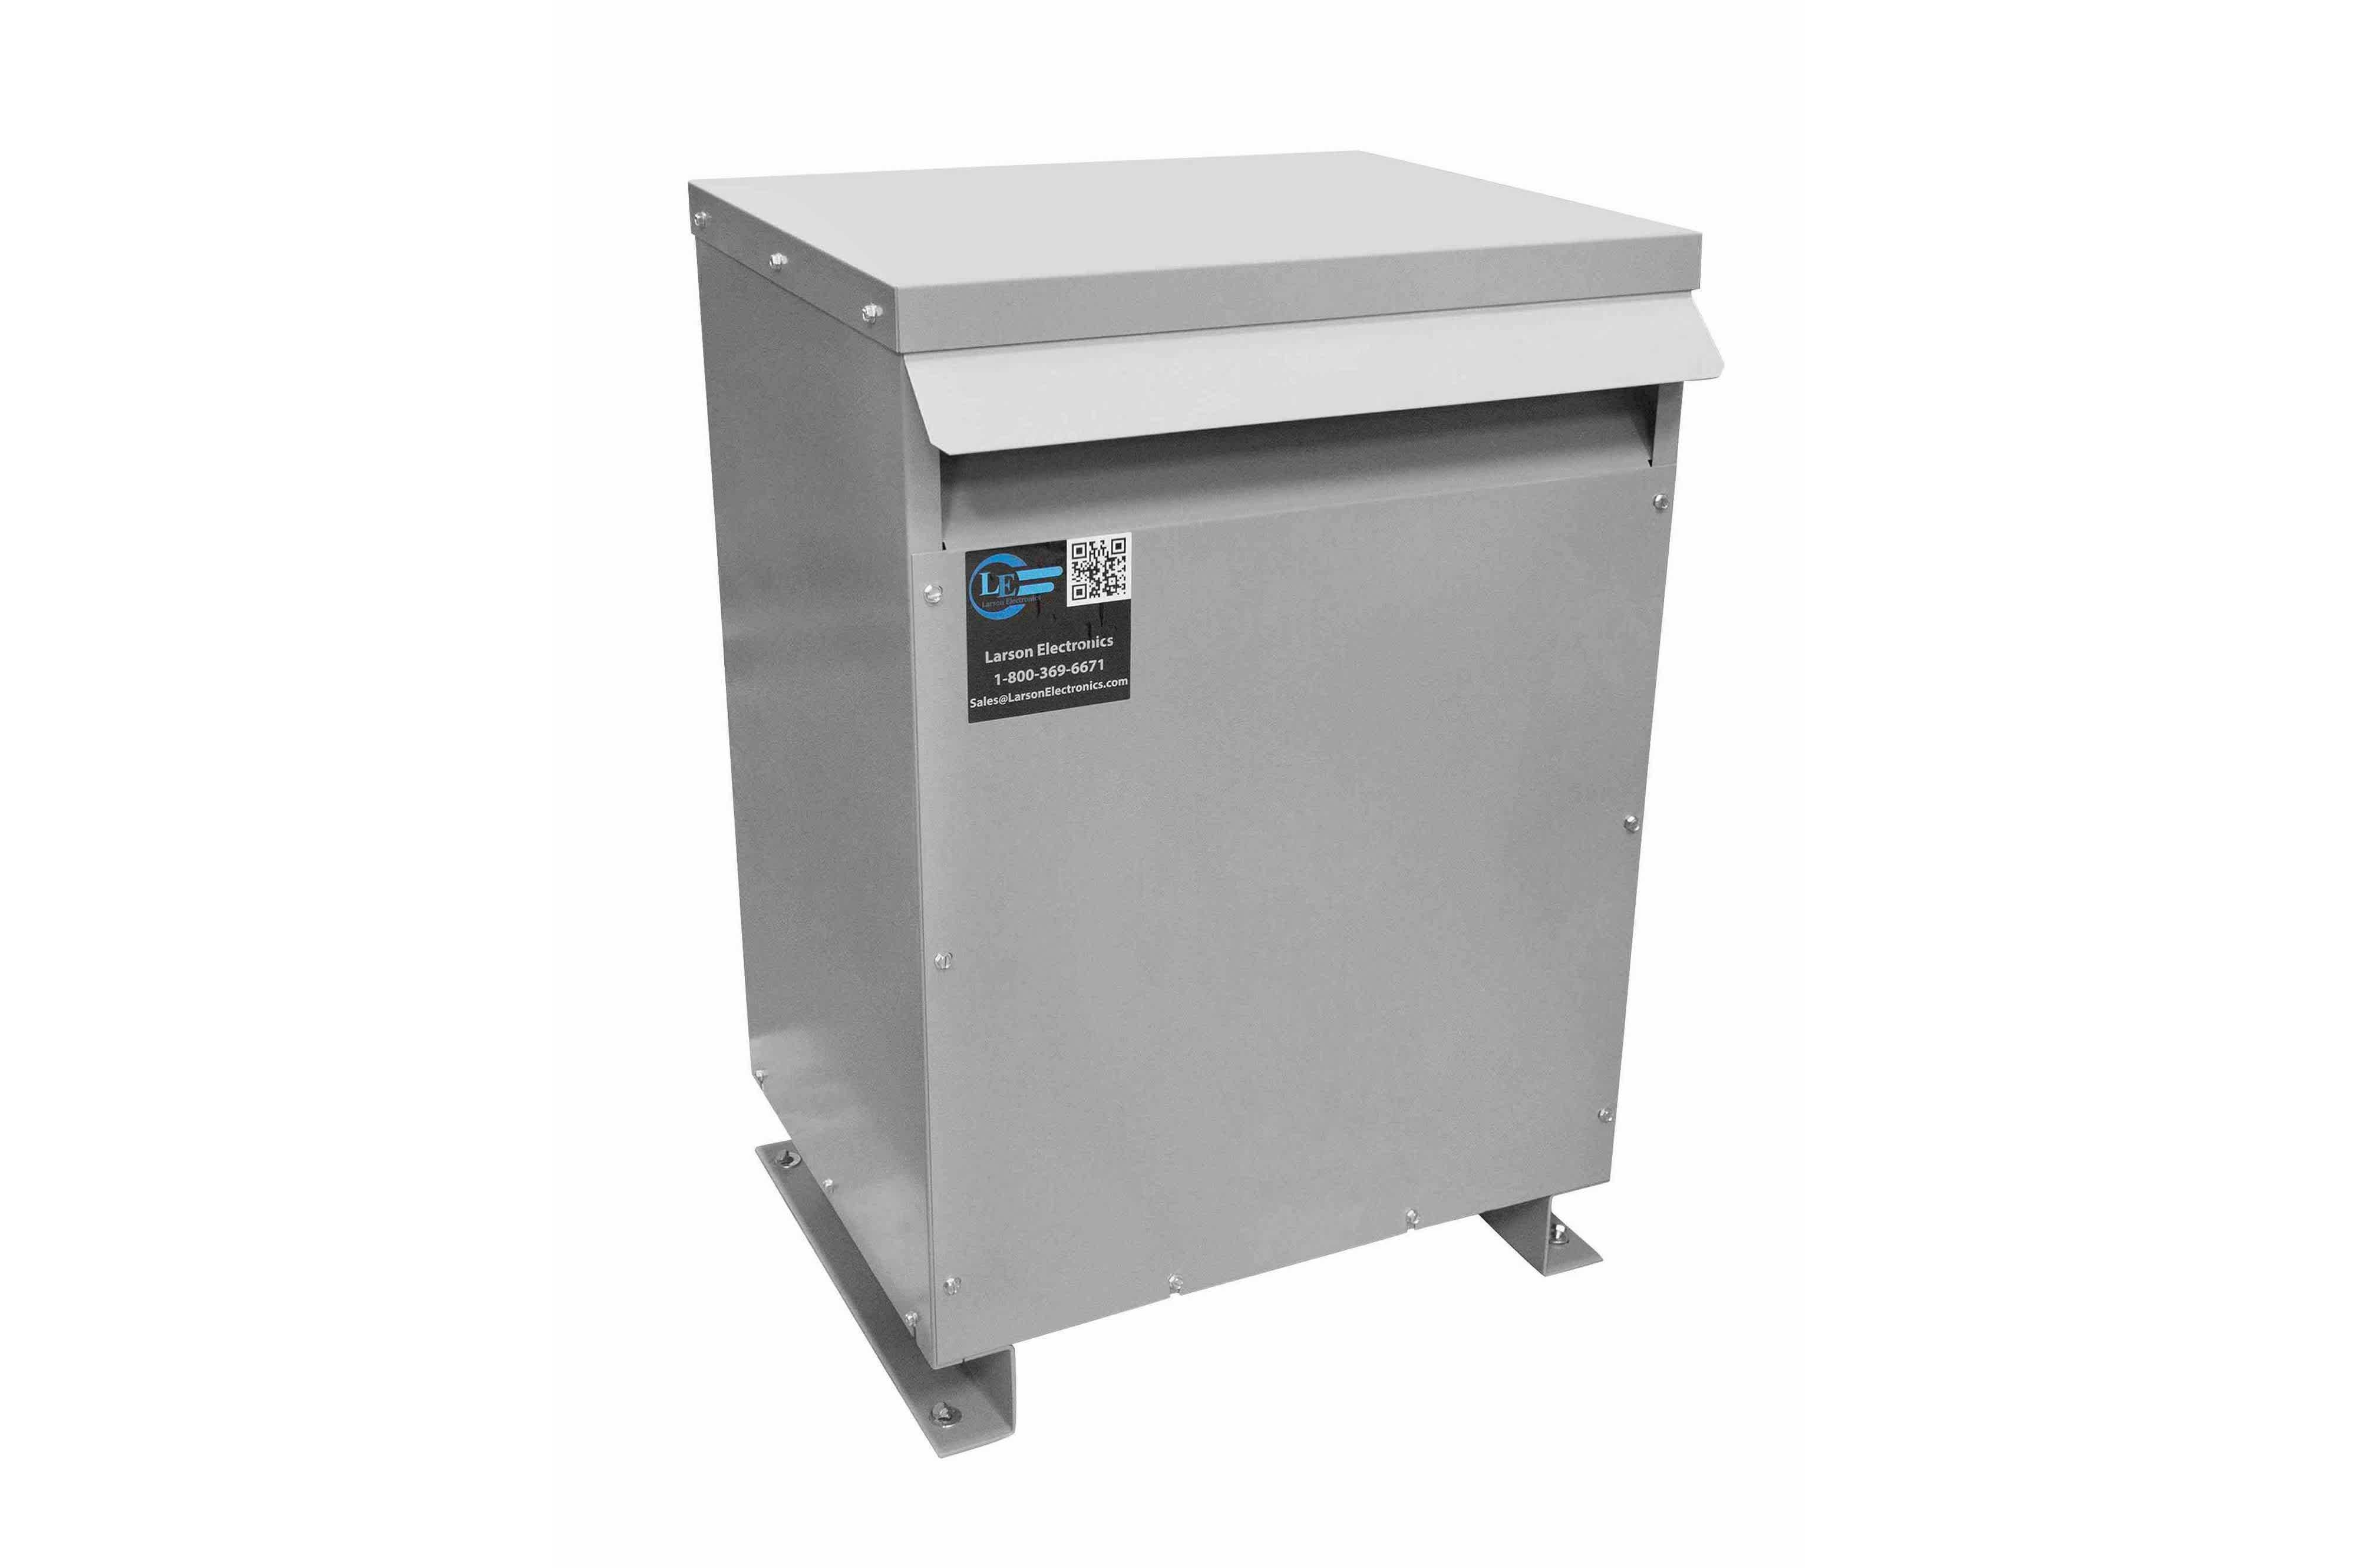 137.5 kVA 3PH Isolation Transformer, 240V Delta Primary, 380V Delta Secondary, N3R, Ventilated, 60 Hz